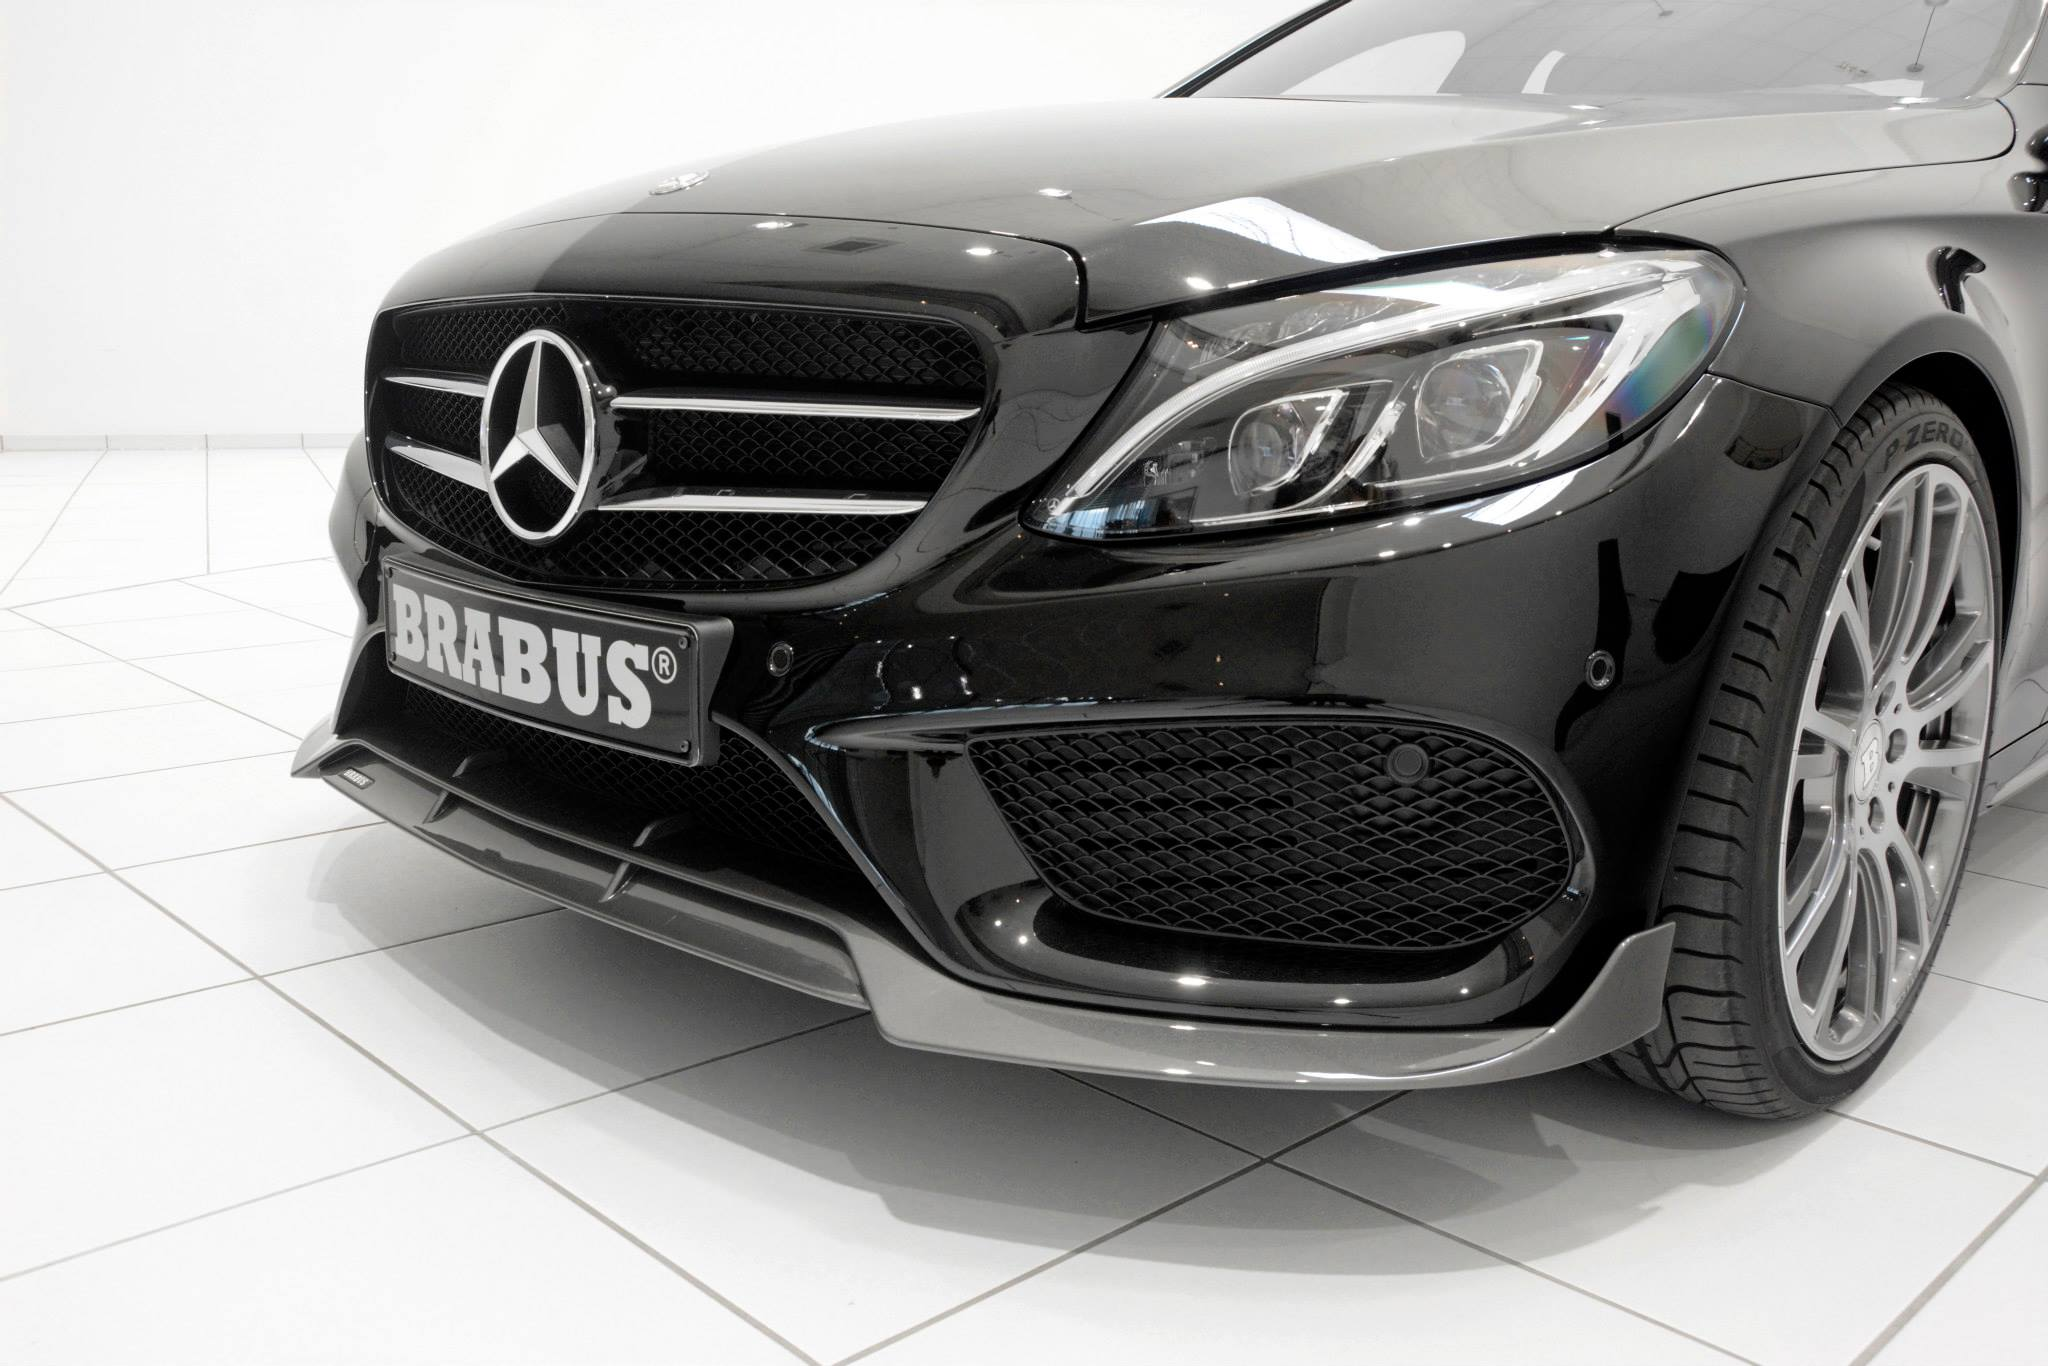 brabus tuning program for w205 c class with amg sports. Black Bedroom Furniture Sets. Home Design Ideas